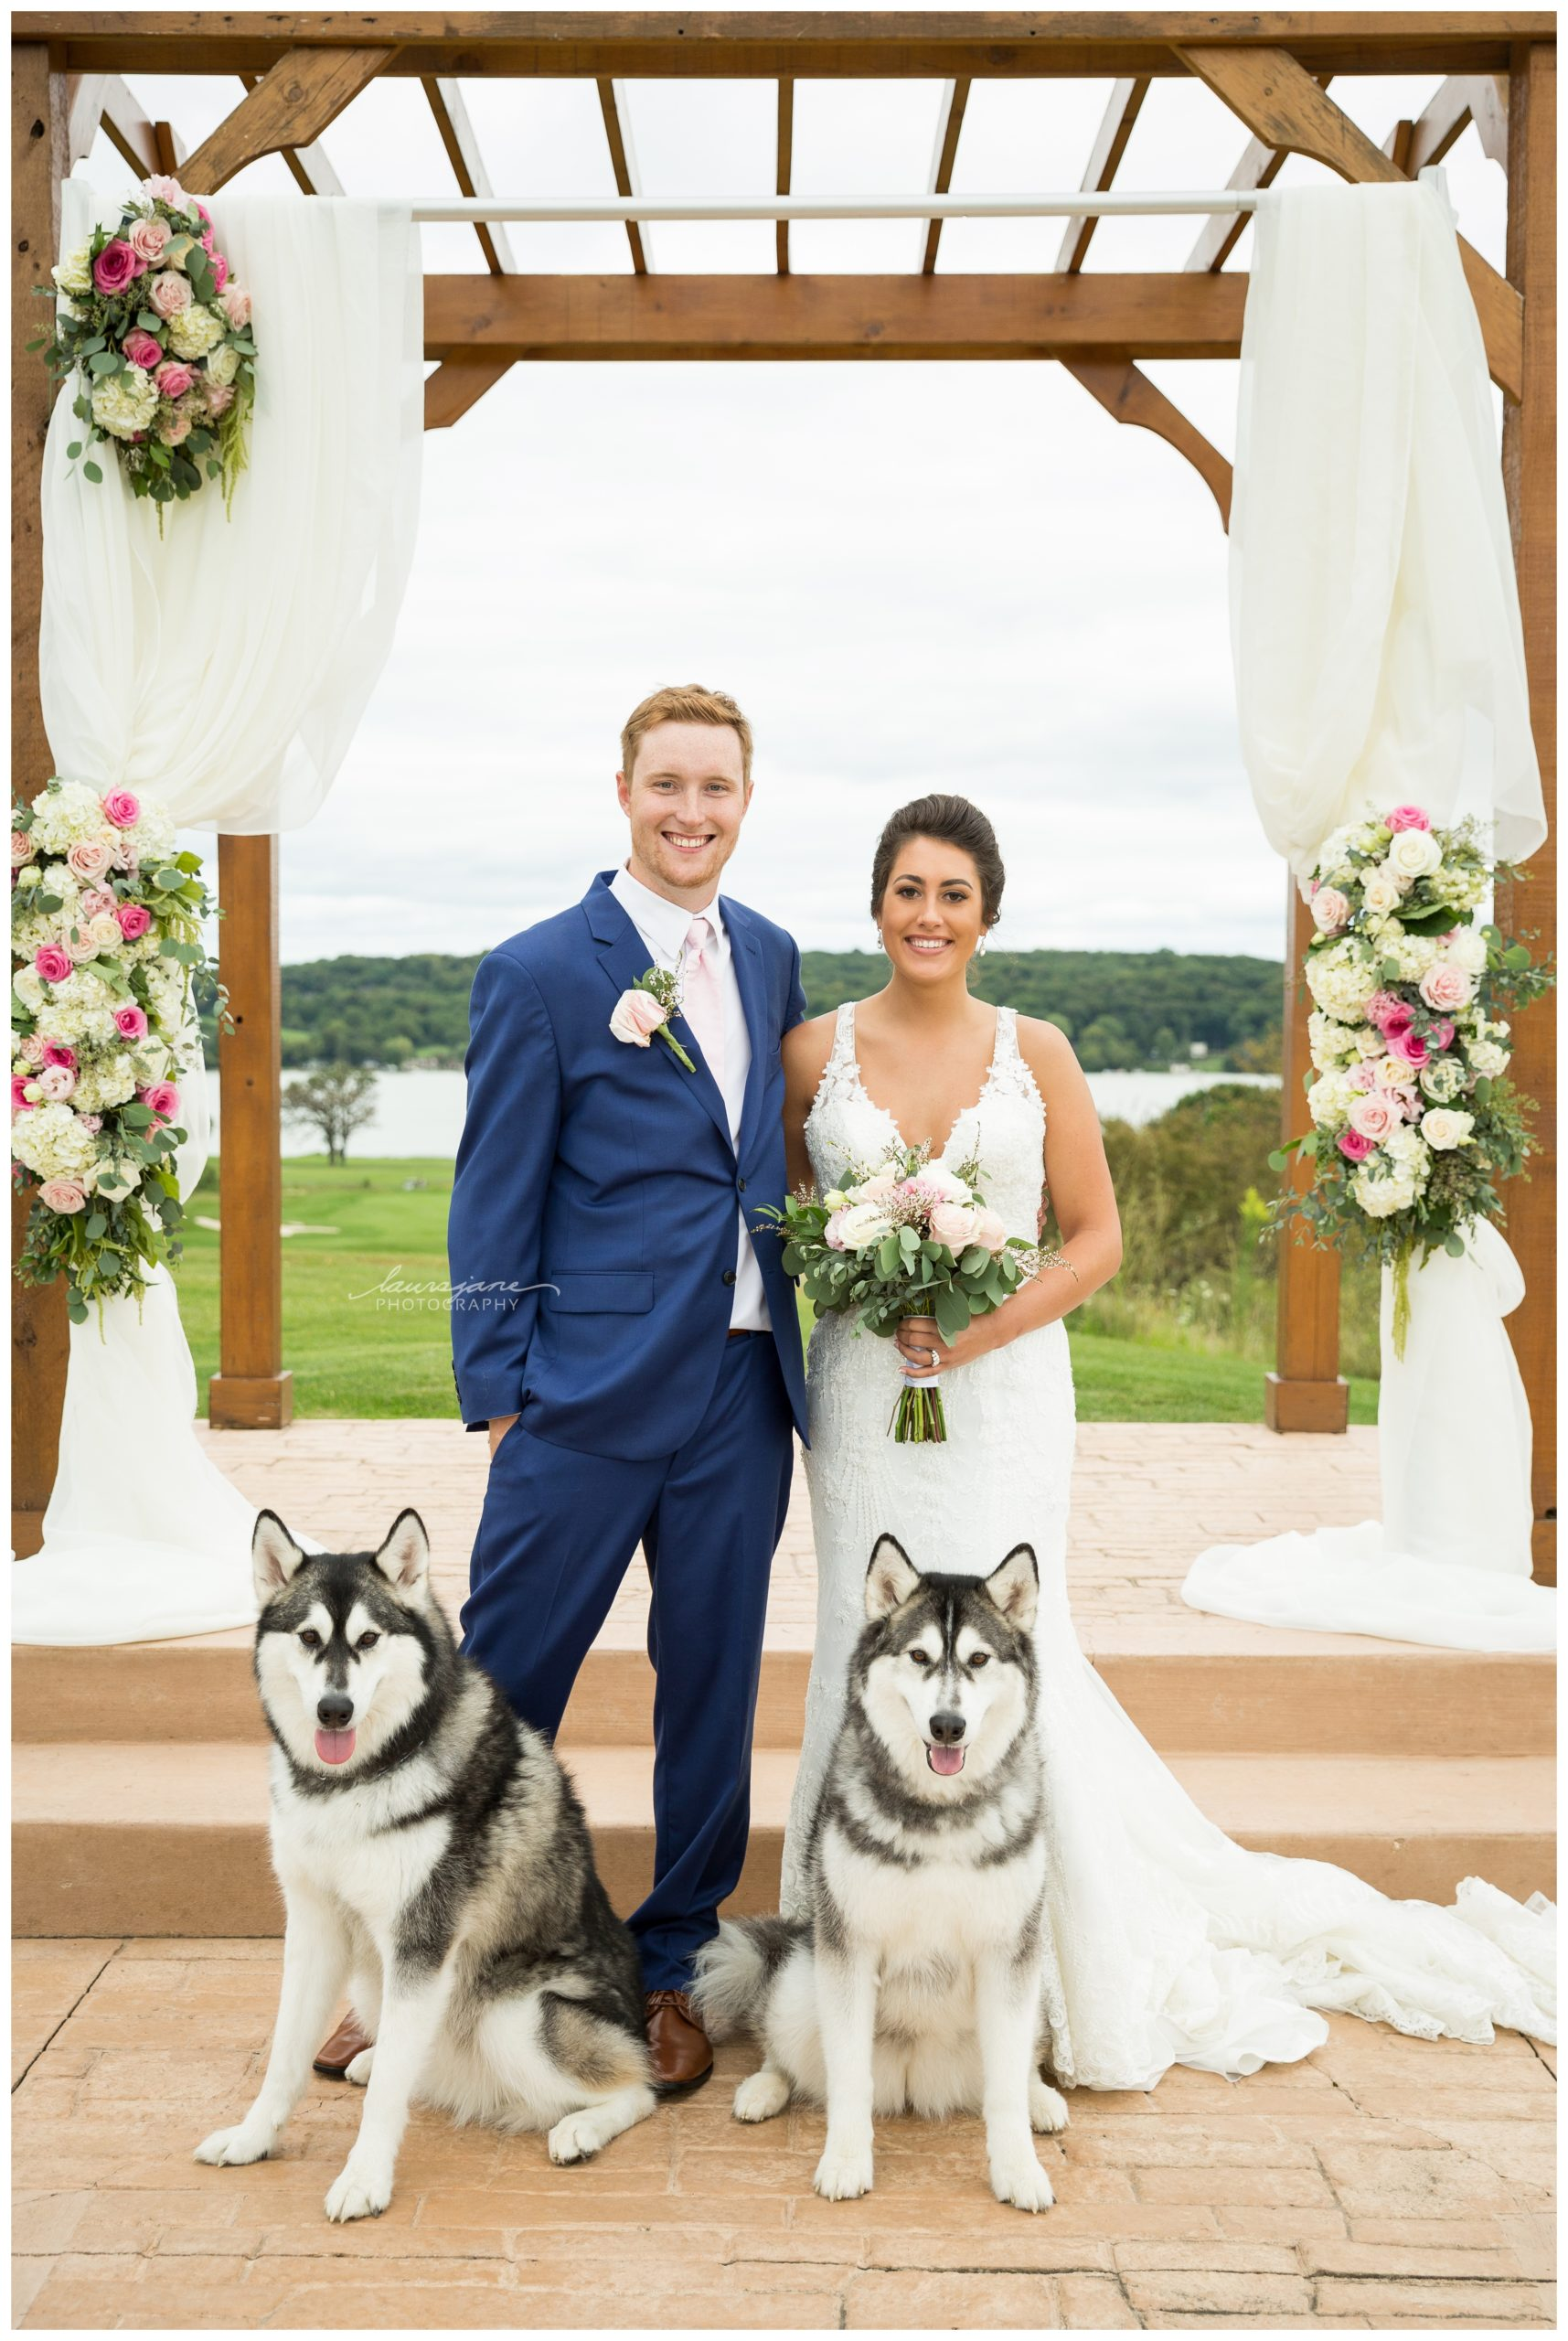 Wedding Portrait of Bride & Groom with their Pets